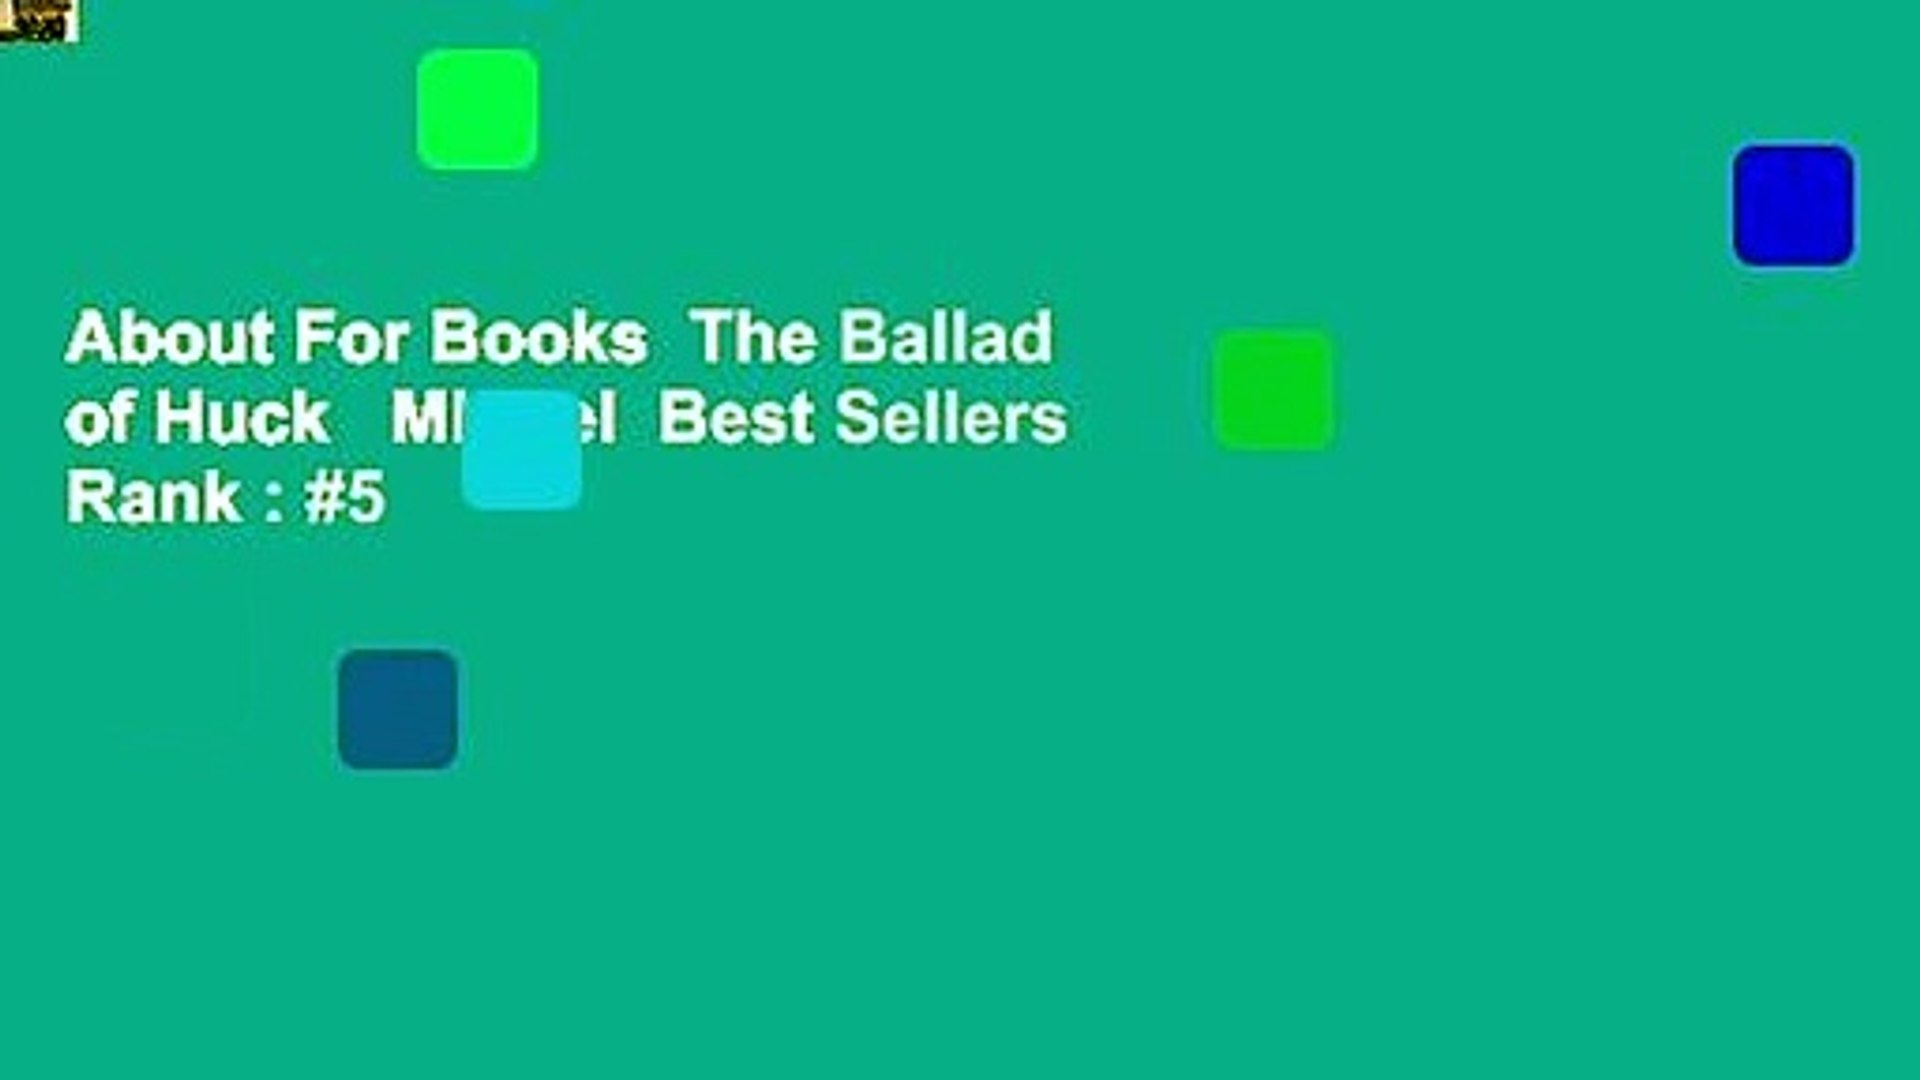 About For Books  The Ballad of Huck   Miguel  Best Sellers Rank : #5